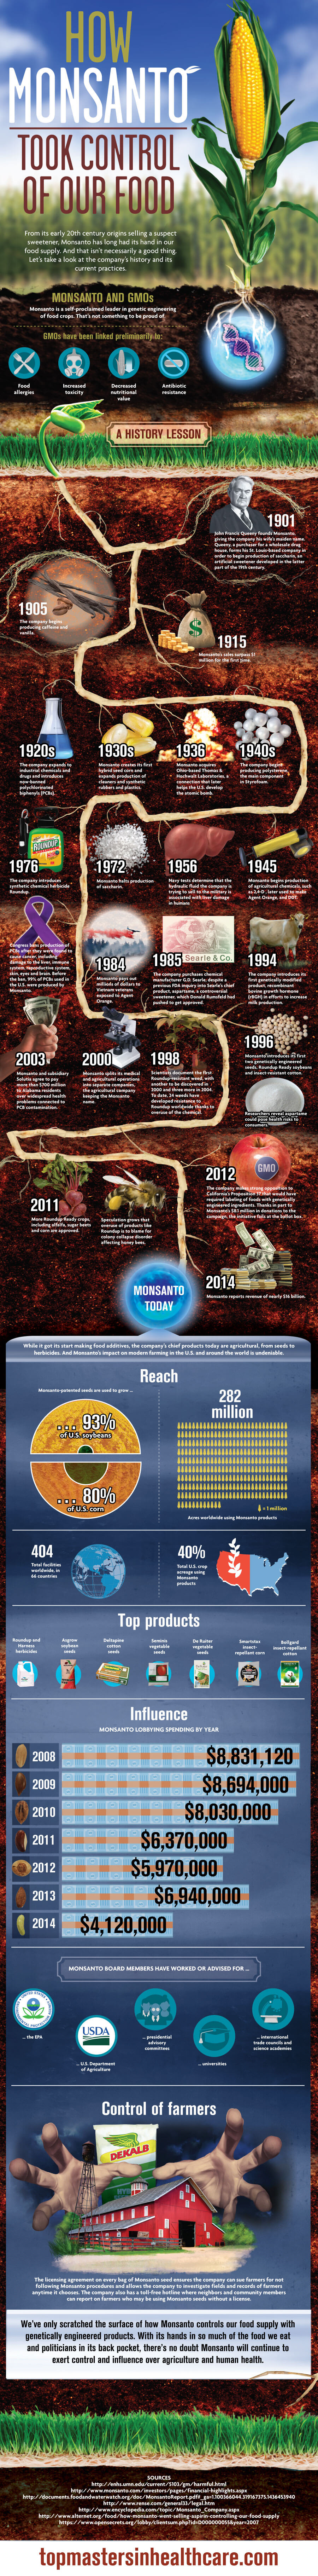 How Monsanto took control of our Food [Infographic] | ecogreenlove